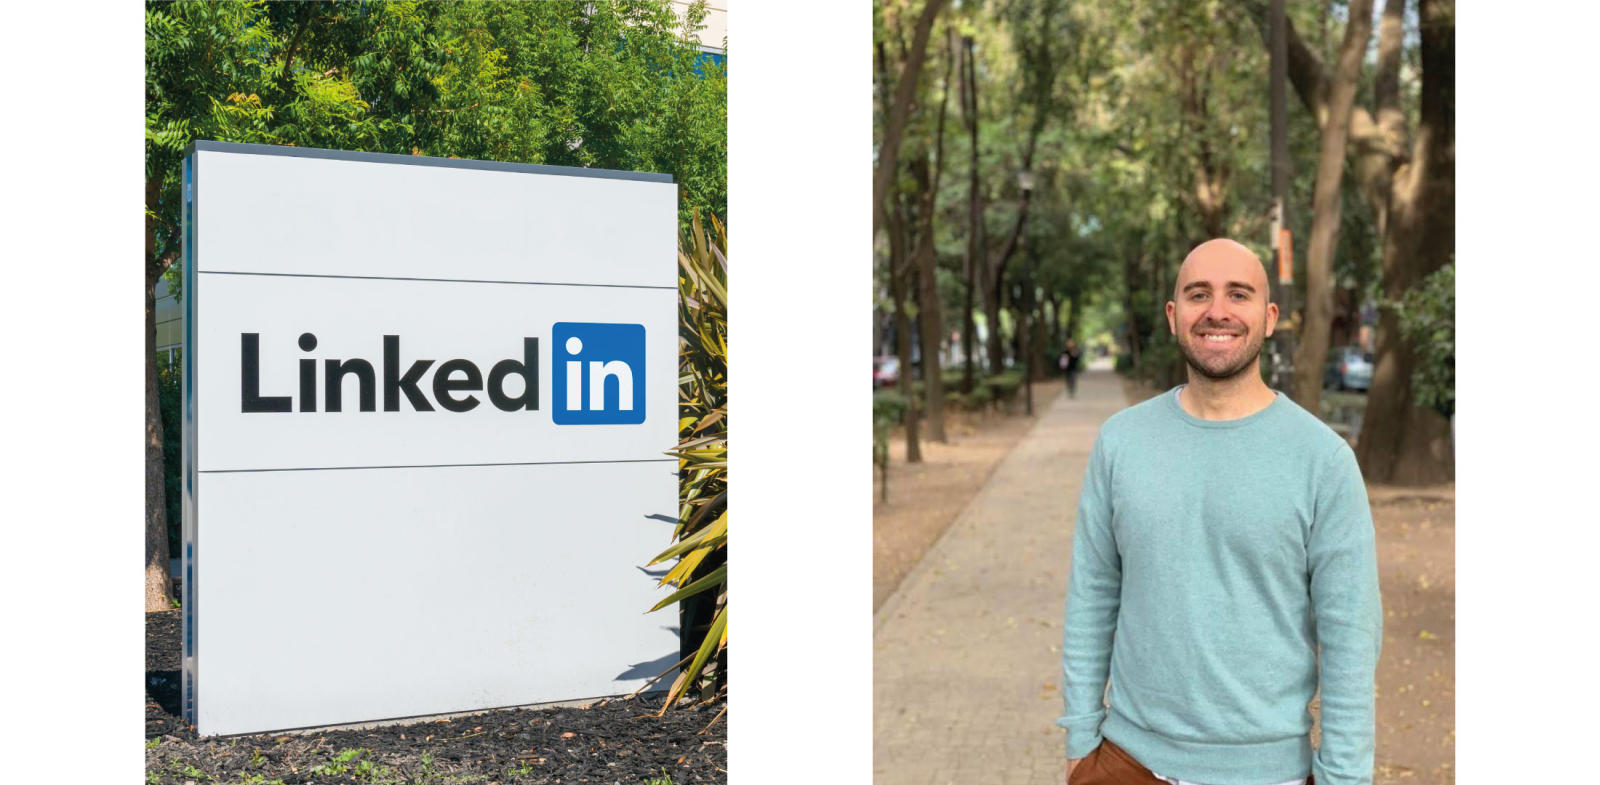 Linkedin sign and Eric Grant, Linkedin Learning, professional development okr examples, okrs professional development, professional development okrs